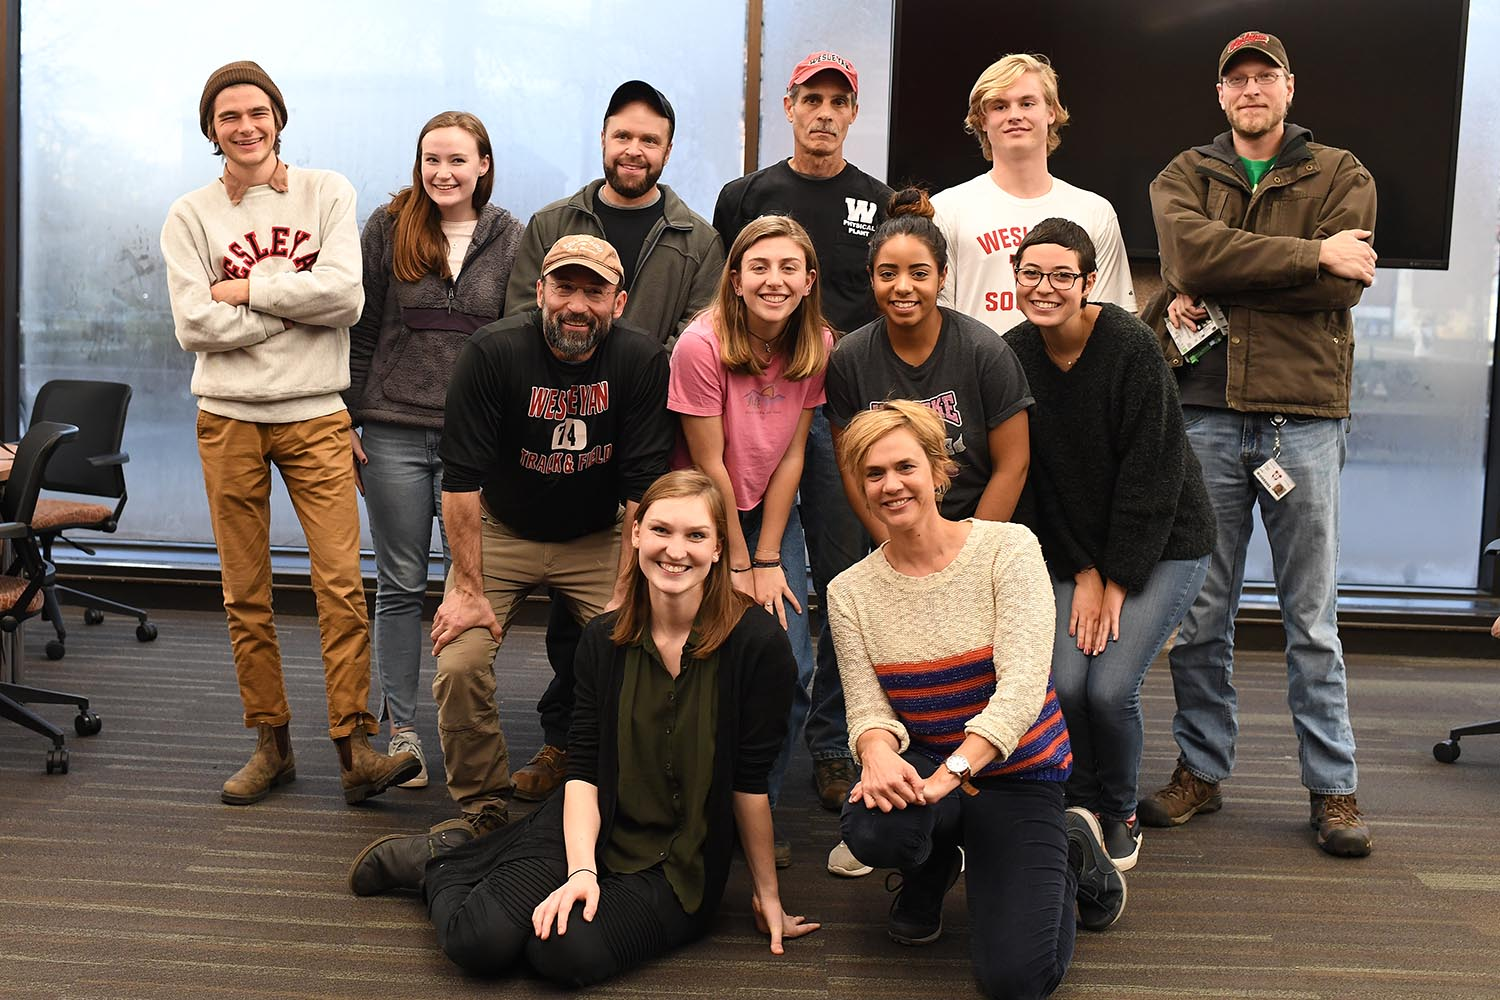 Pictured in the back row, from left: Sammy Osmond, Lilley Gallagher, David Malone, Tom Macri, Gaelin Kingston, Joseph Dorrer, Pictured in the middle row, from left: Dean Canalia, Camille Britton, Tamara Rivera, and Mia McKinney. Pictured in the front row, from left: Gretchen LaMotte '18 and Allison Orr.